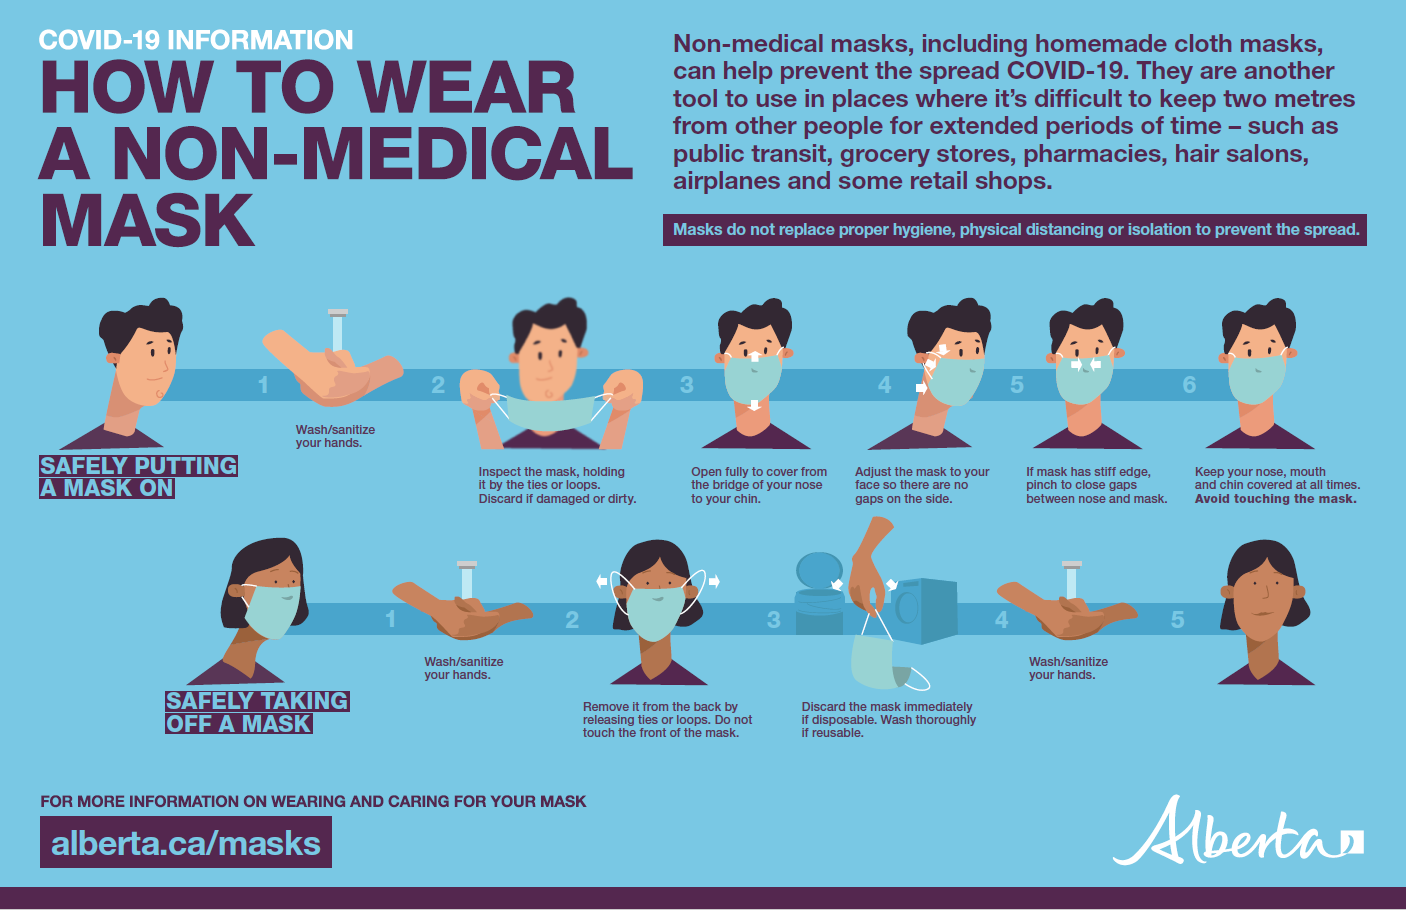 How to wear a non-medical mask (www.alberta.ca/masks)